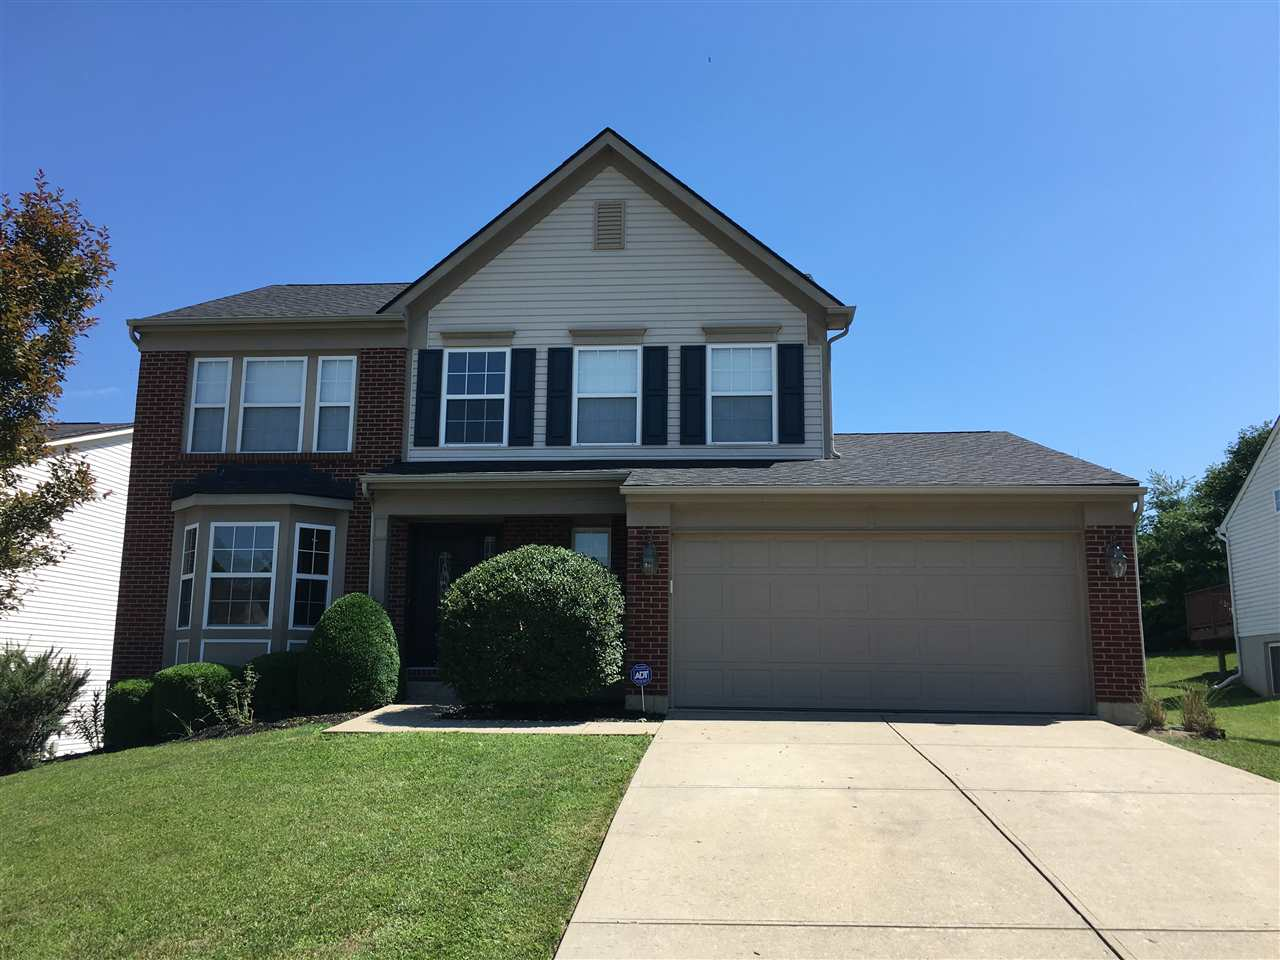 Photo 1 for 1186 Edgebrook Florence, KY 41042